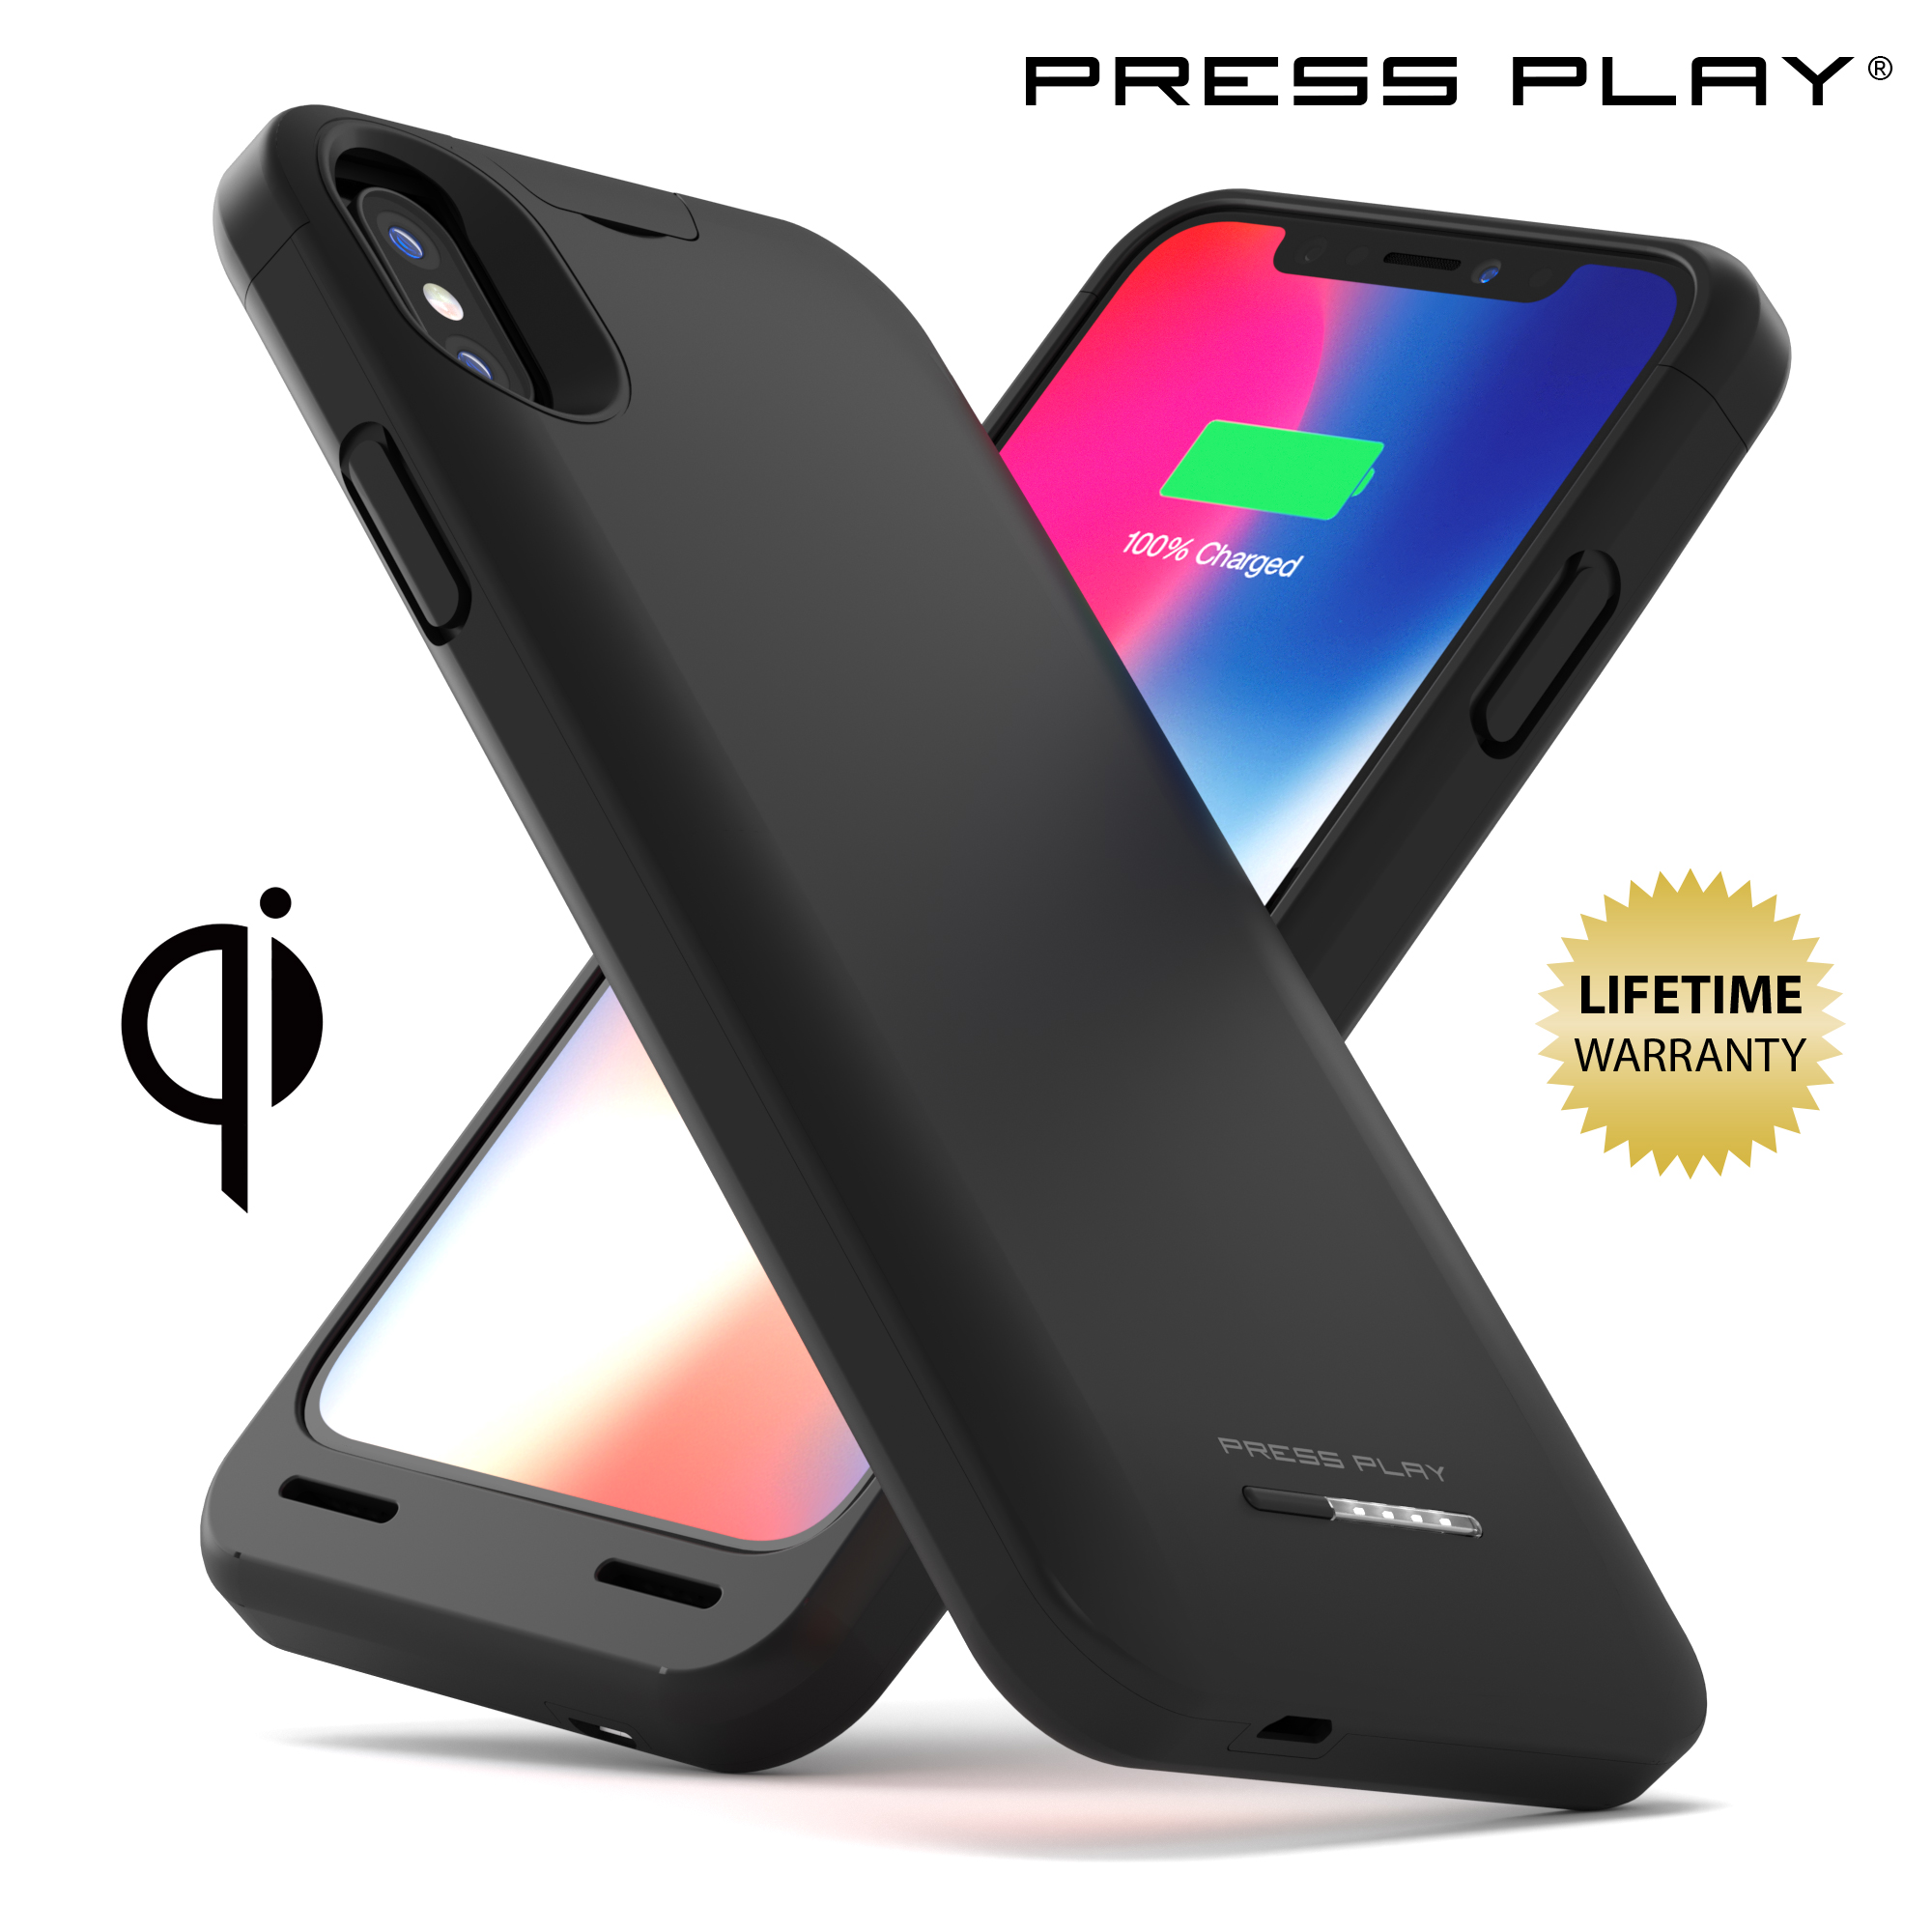 iPhone X Battery Case (APPLE CERTIFIED) with Qi Wireless Charging PRESS PLAY NERO iPhone 10 Portable Charger Slim Charging Case 4200mAh Extended Battery Pack Power Cases Juice Bank Cover (Black)